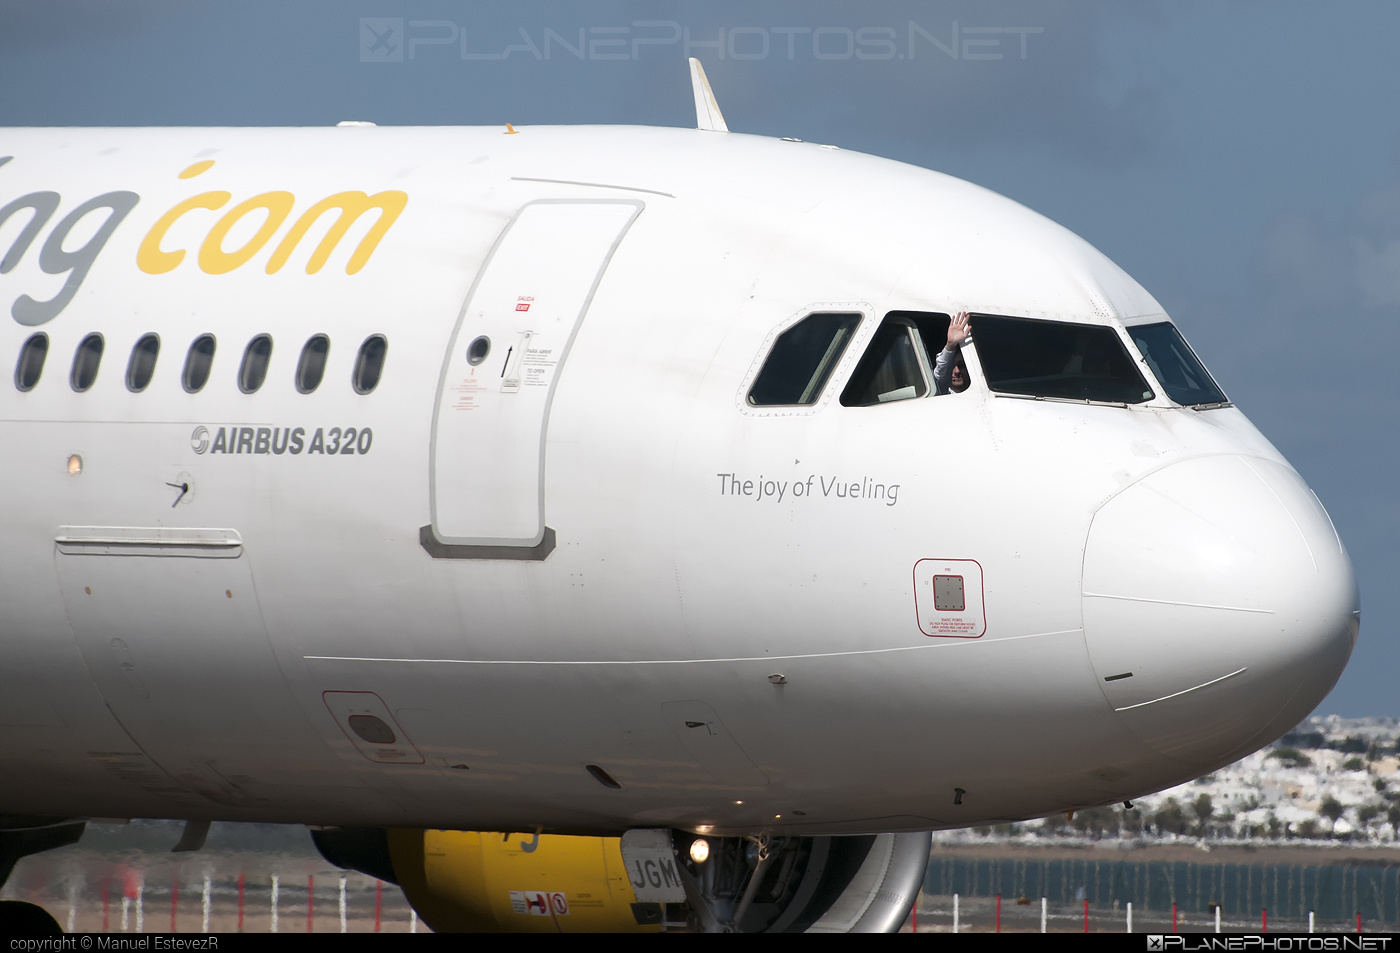 Airbus A320-214 - EC-JGM operated by Vueling Airlines #a320 #a320family #airbus #airbus320 #vueling #vuelingairlines